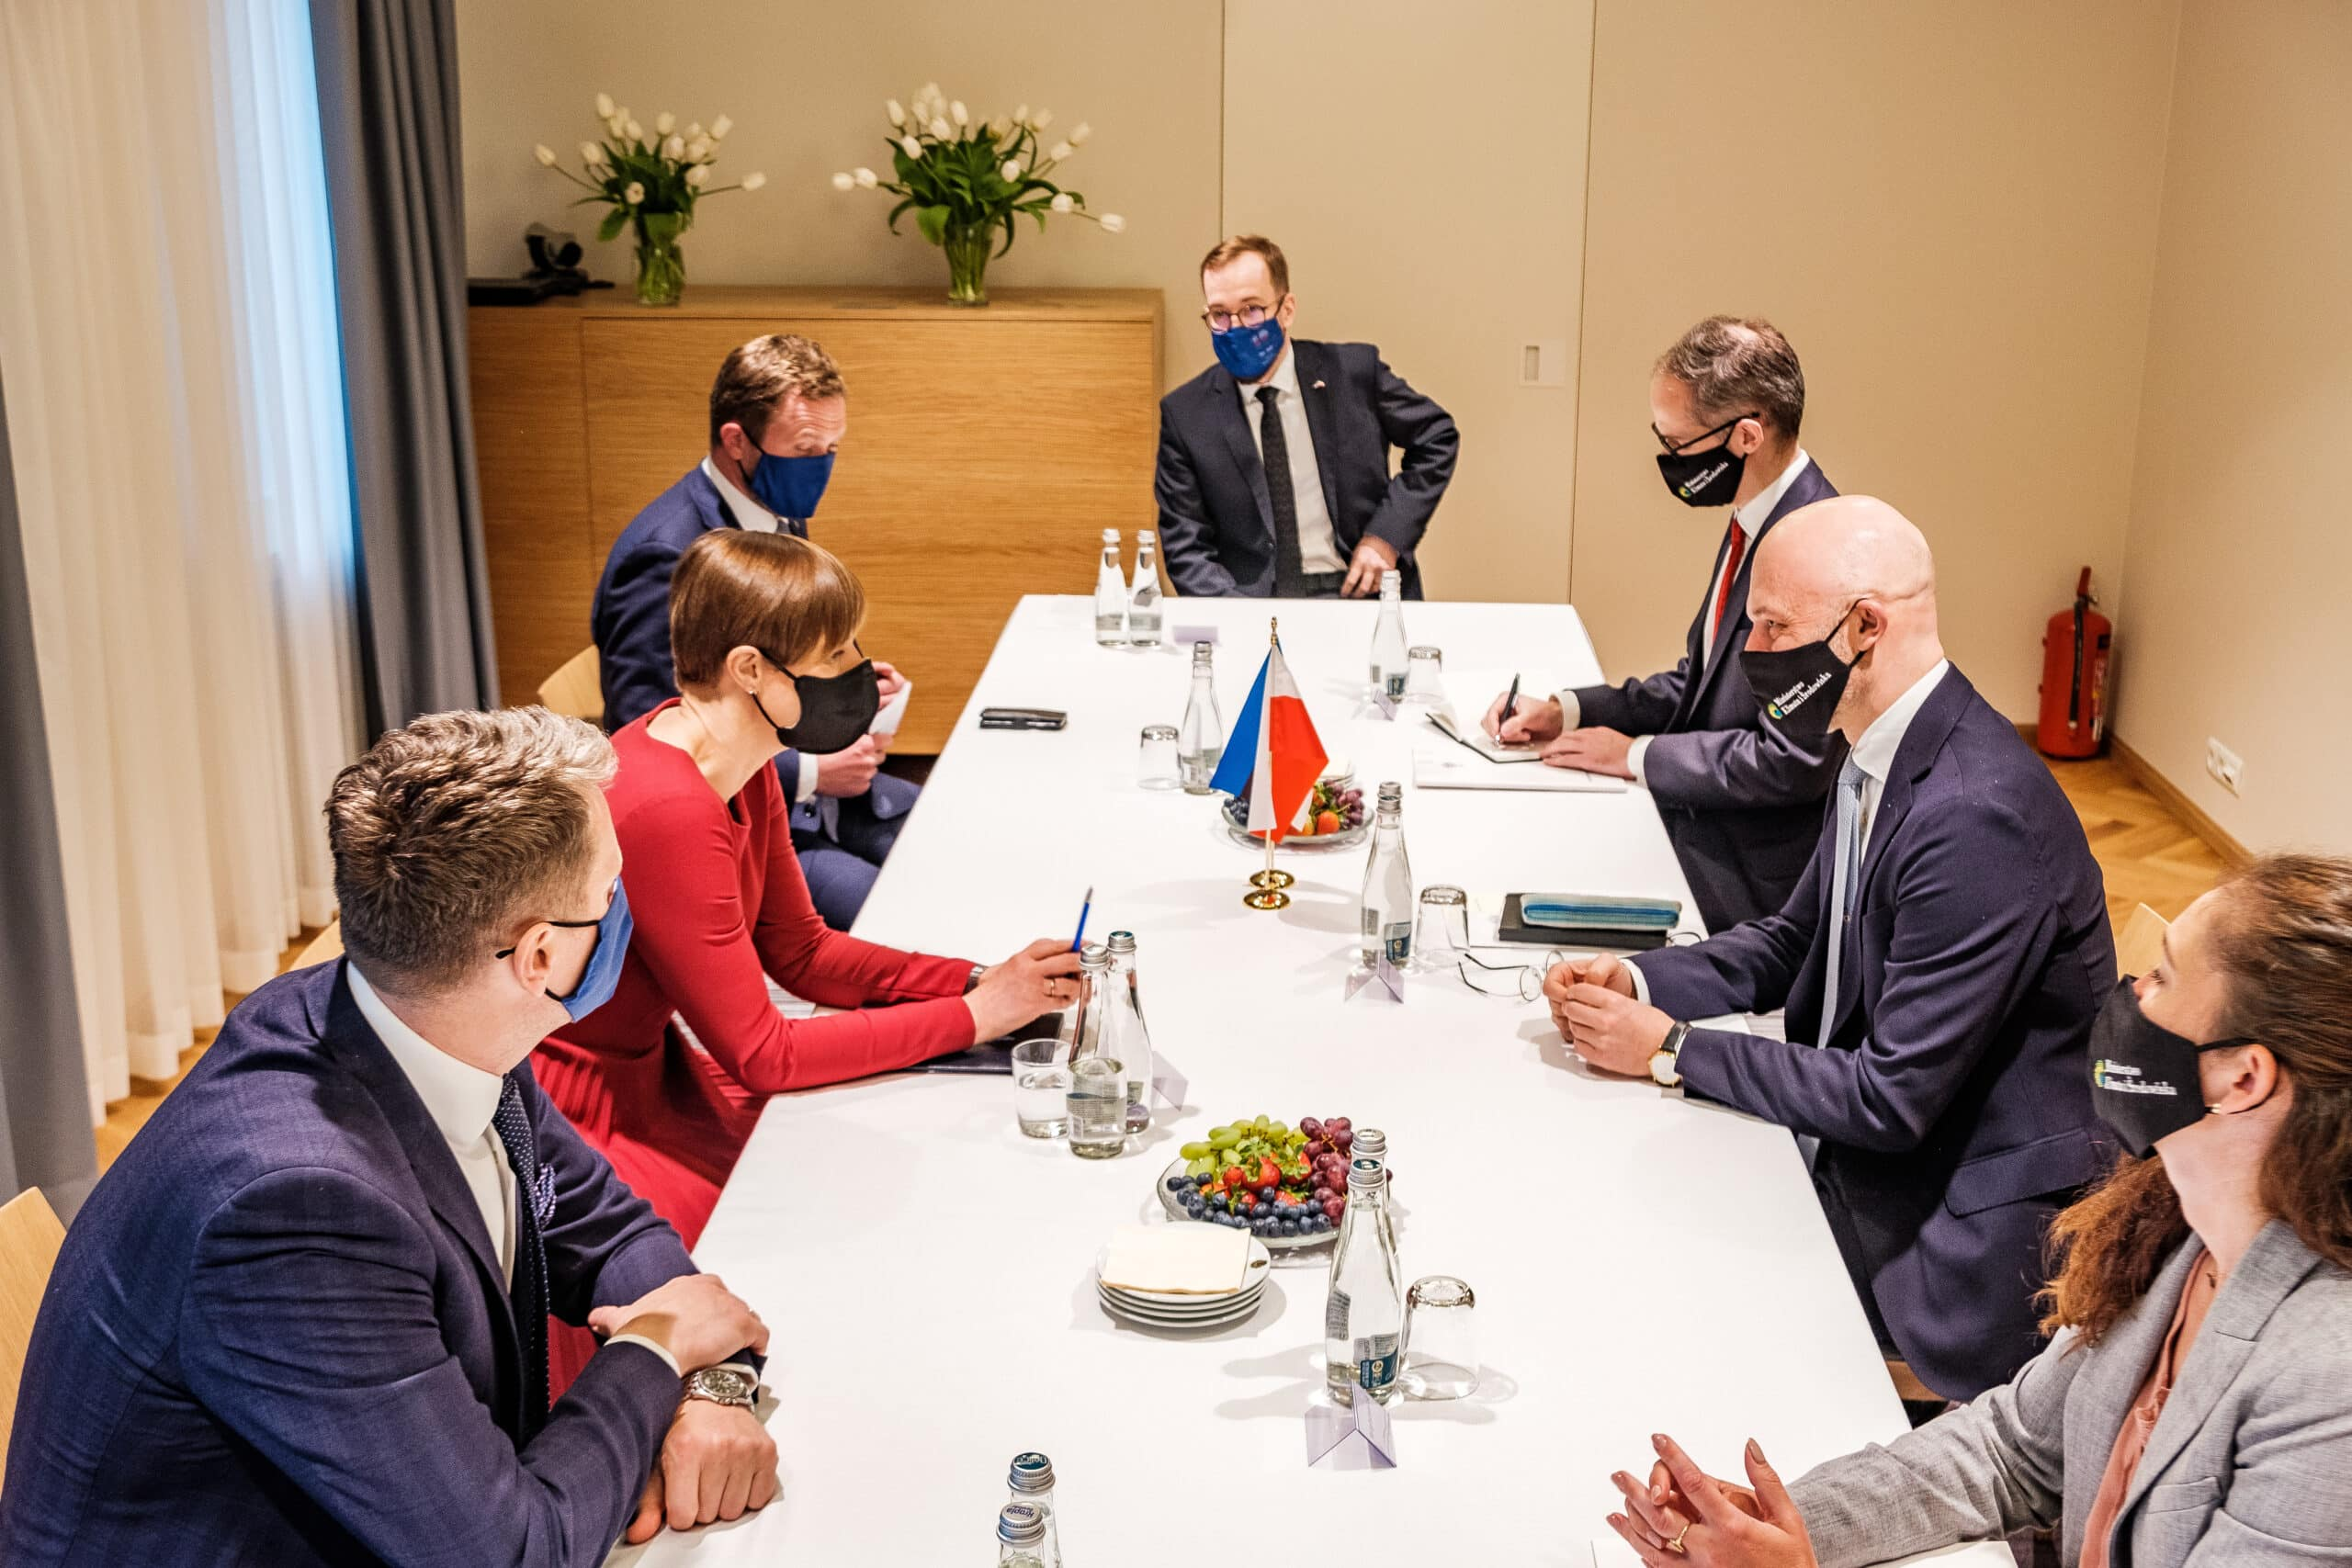 Timbeter takes part of a state visit of the President of Estonia to Poland